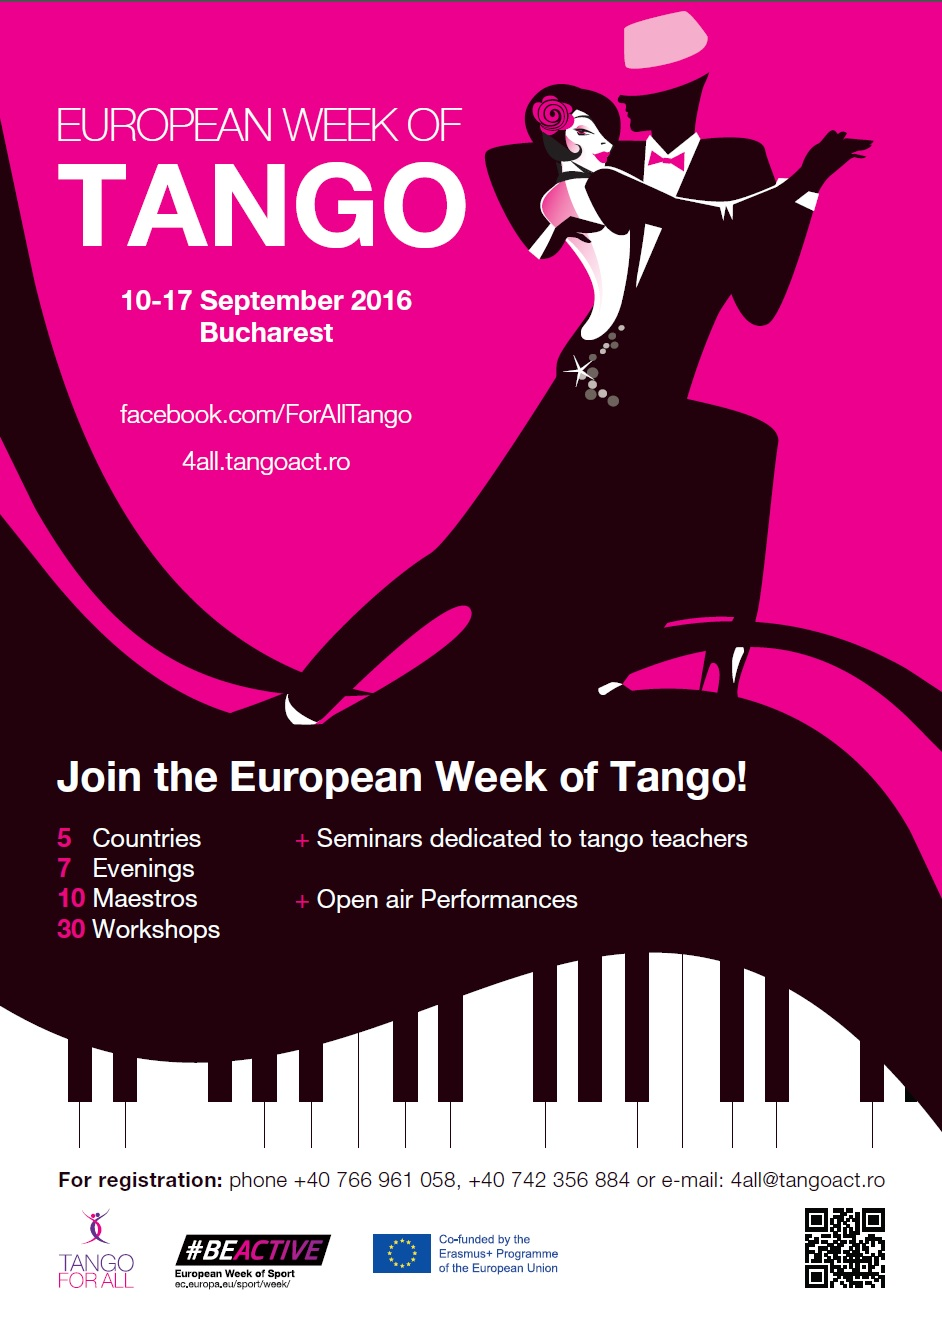 European Week of Tango